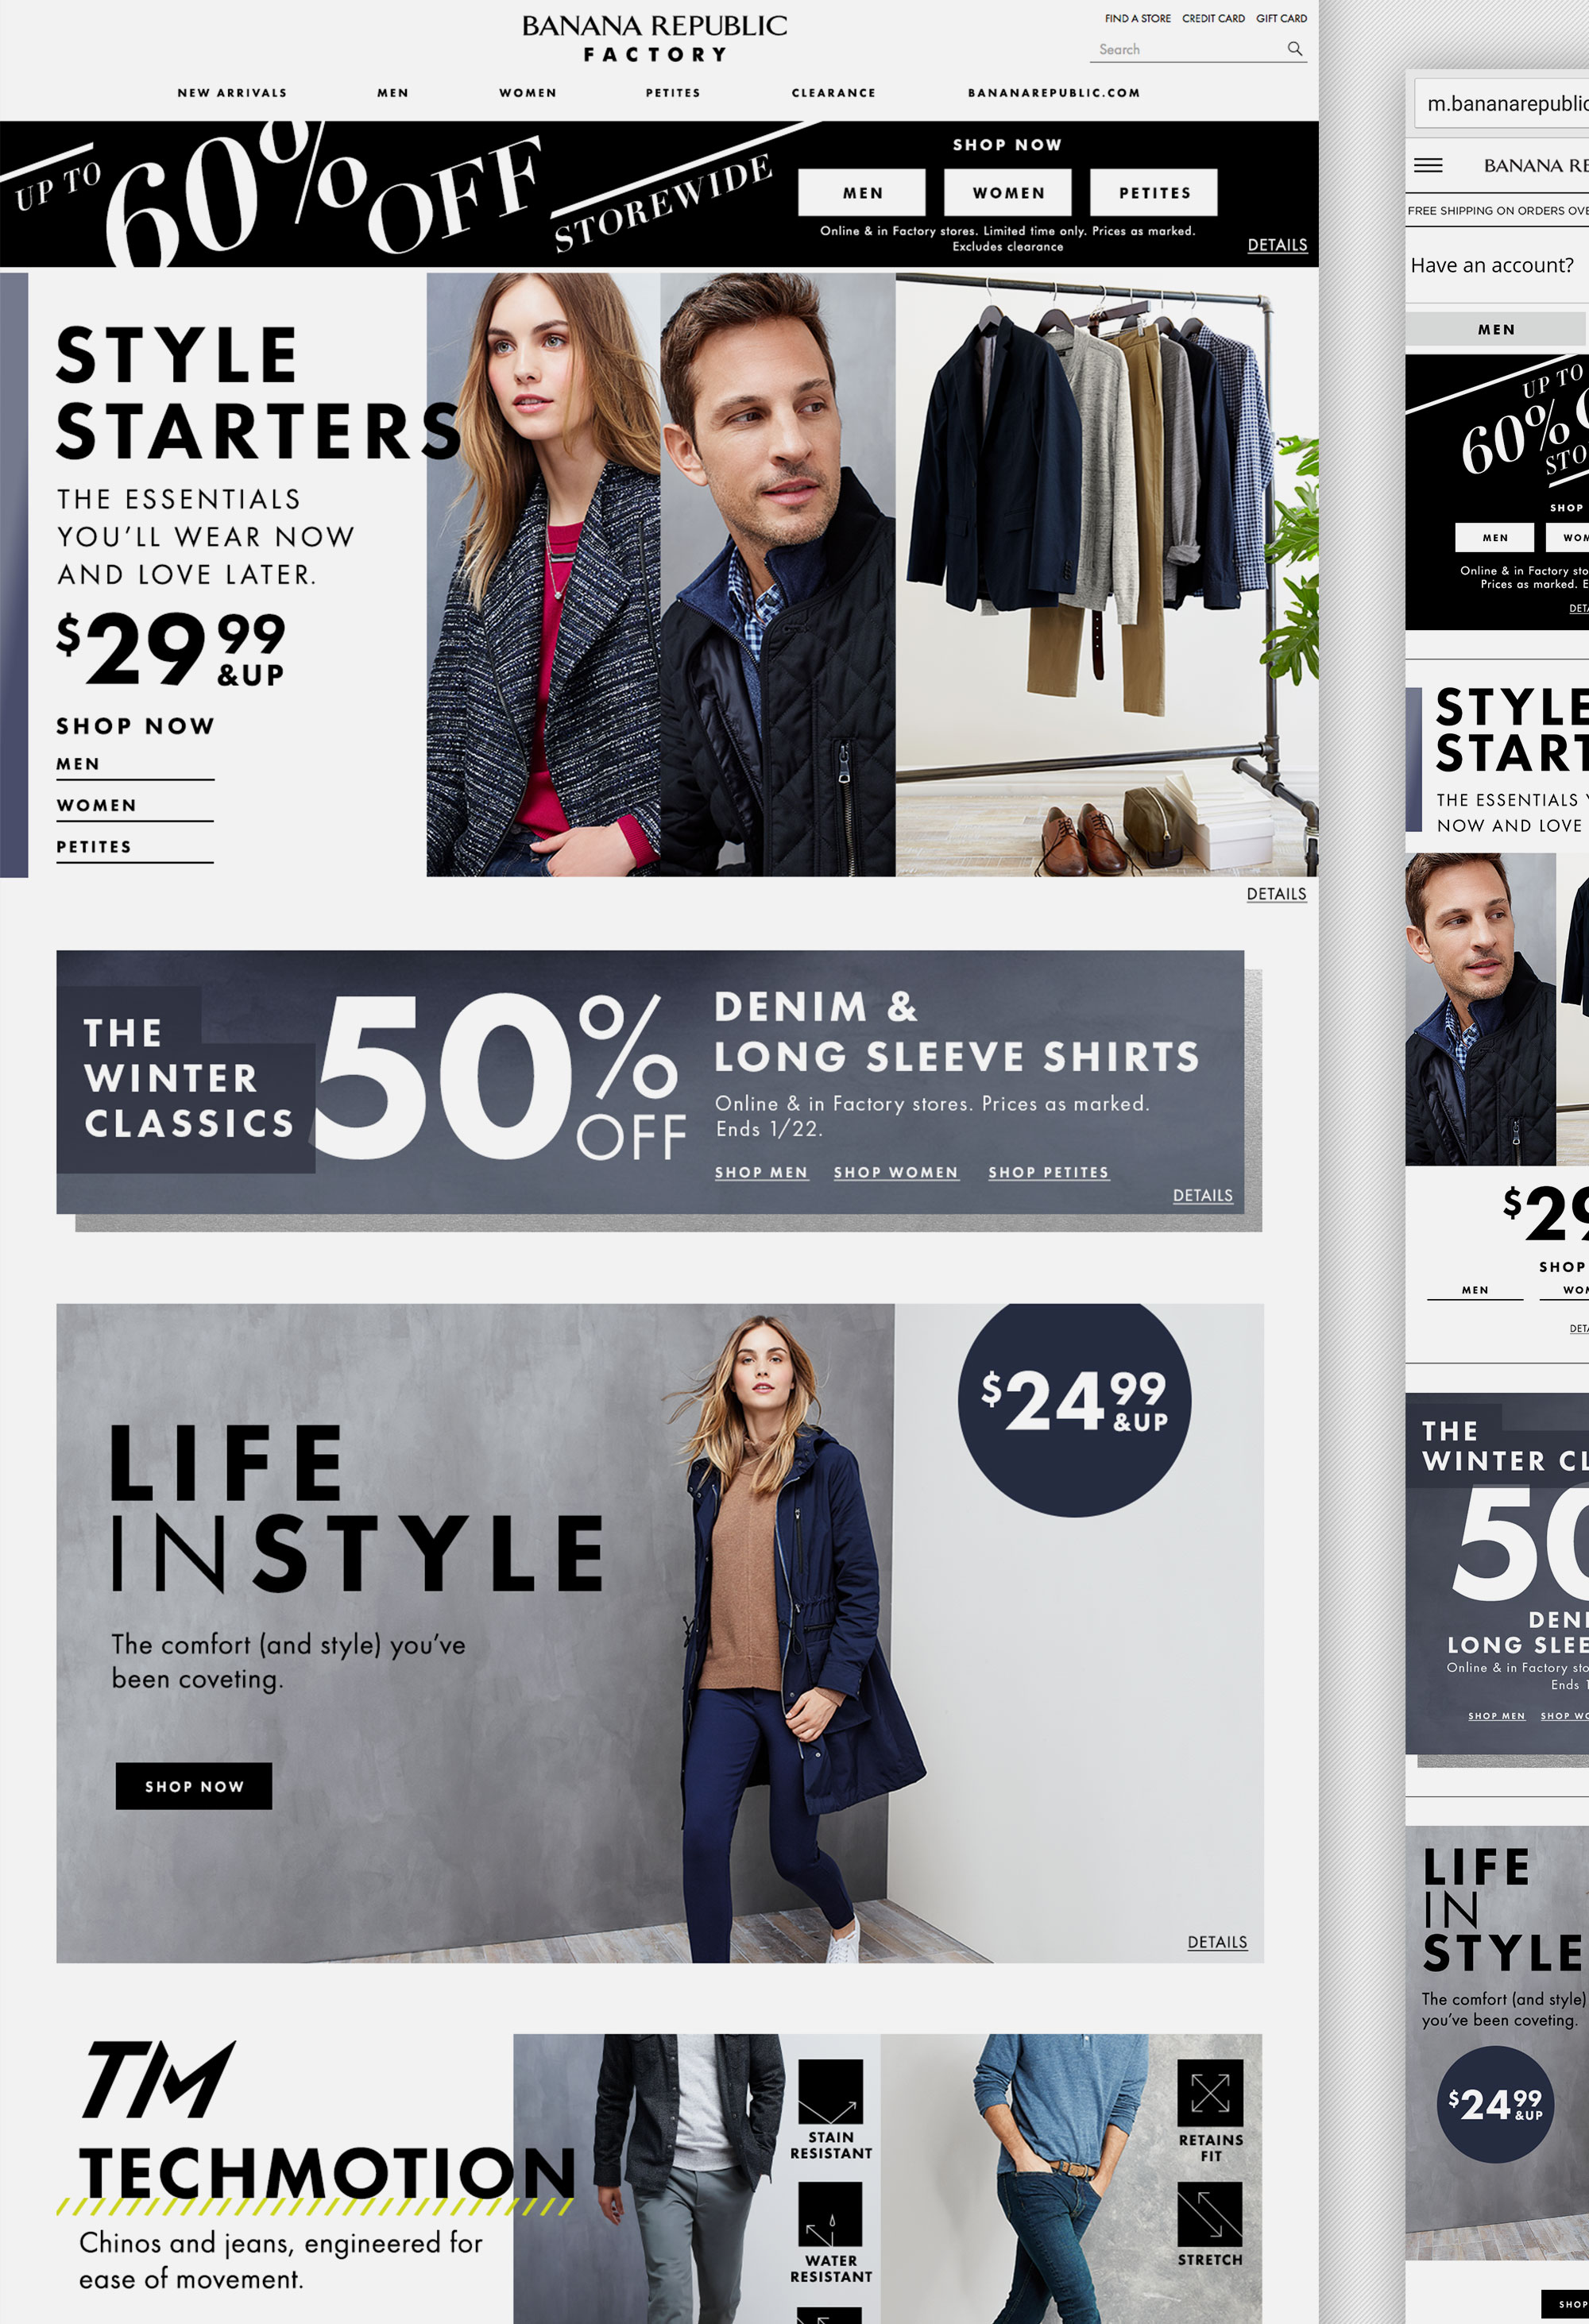 Banana Republic Factory:    Bi-monthly site refreshes and email marketing.